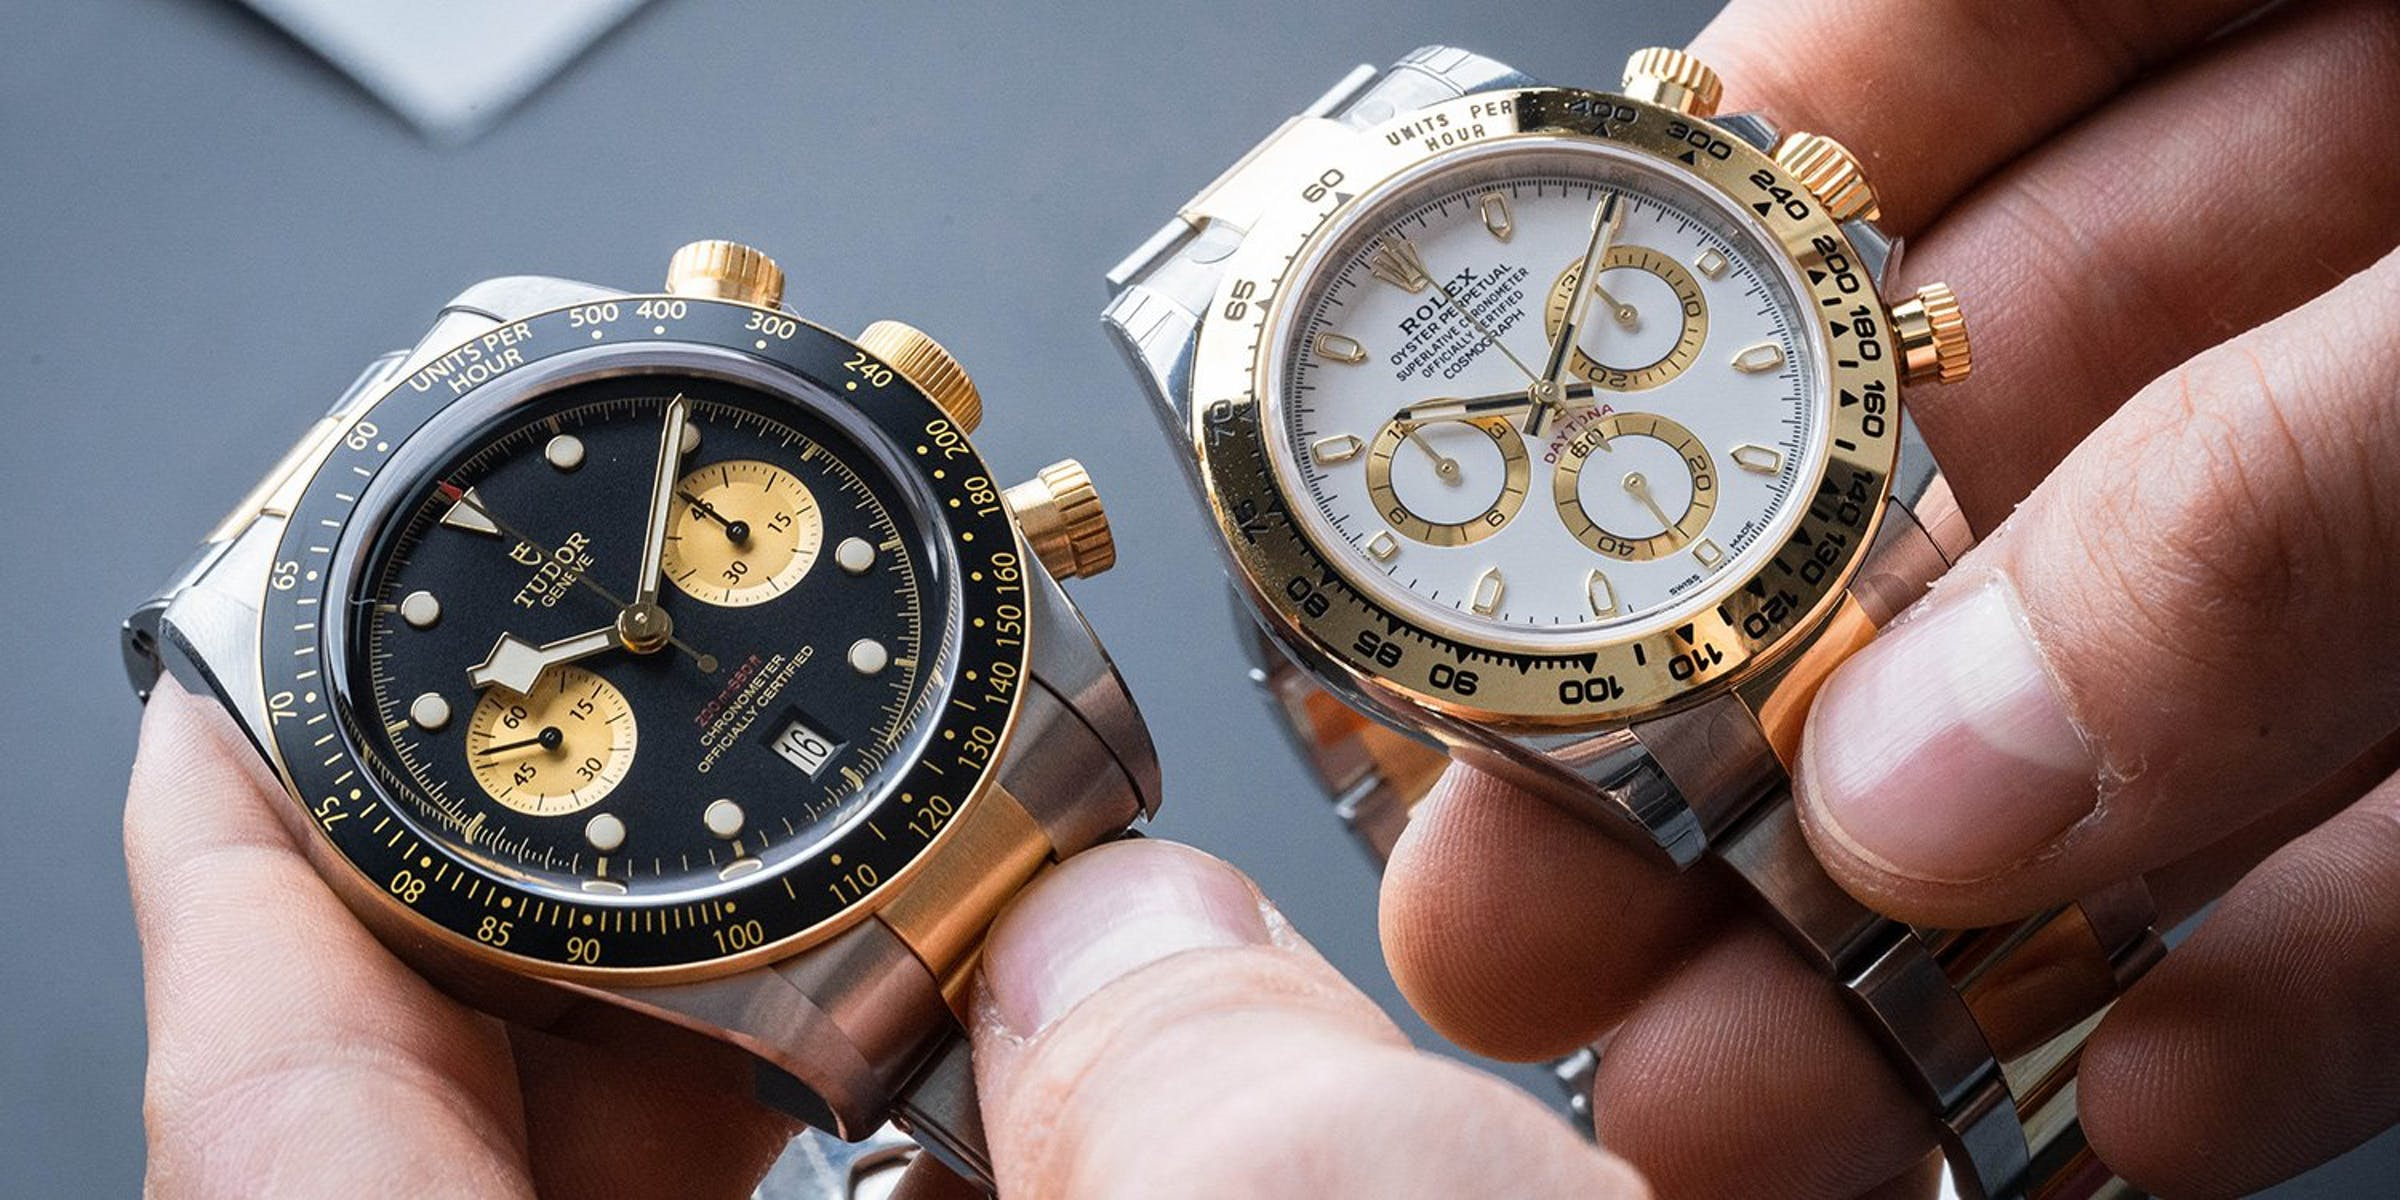 Rolex Daytona: If you like this watch, you might also like…